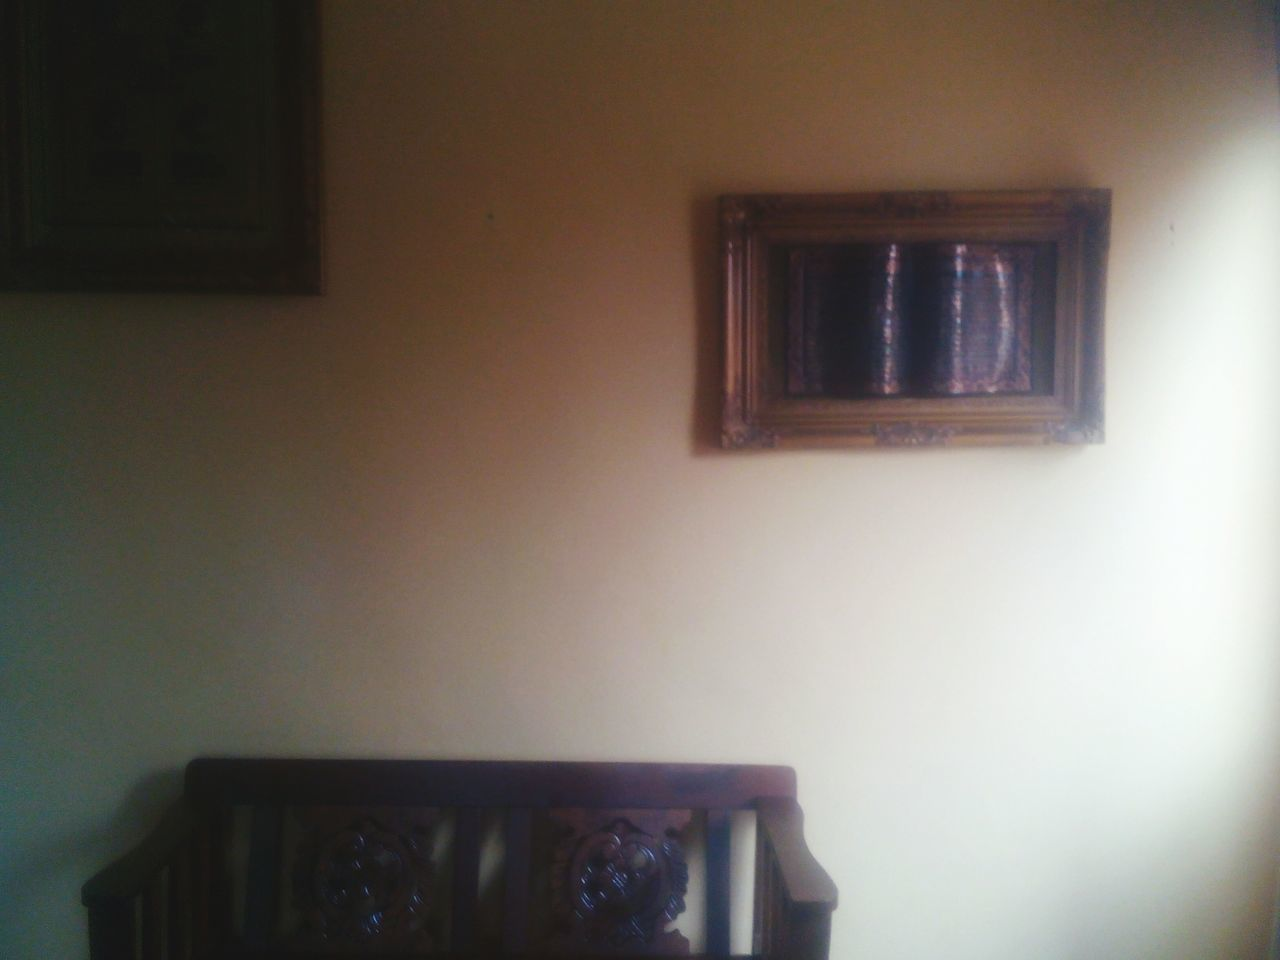 indoors, home interior, picture frame, window, no people, bedroom, architecture, living room, day, close-up